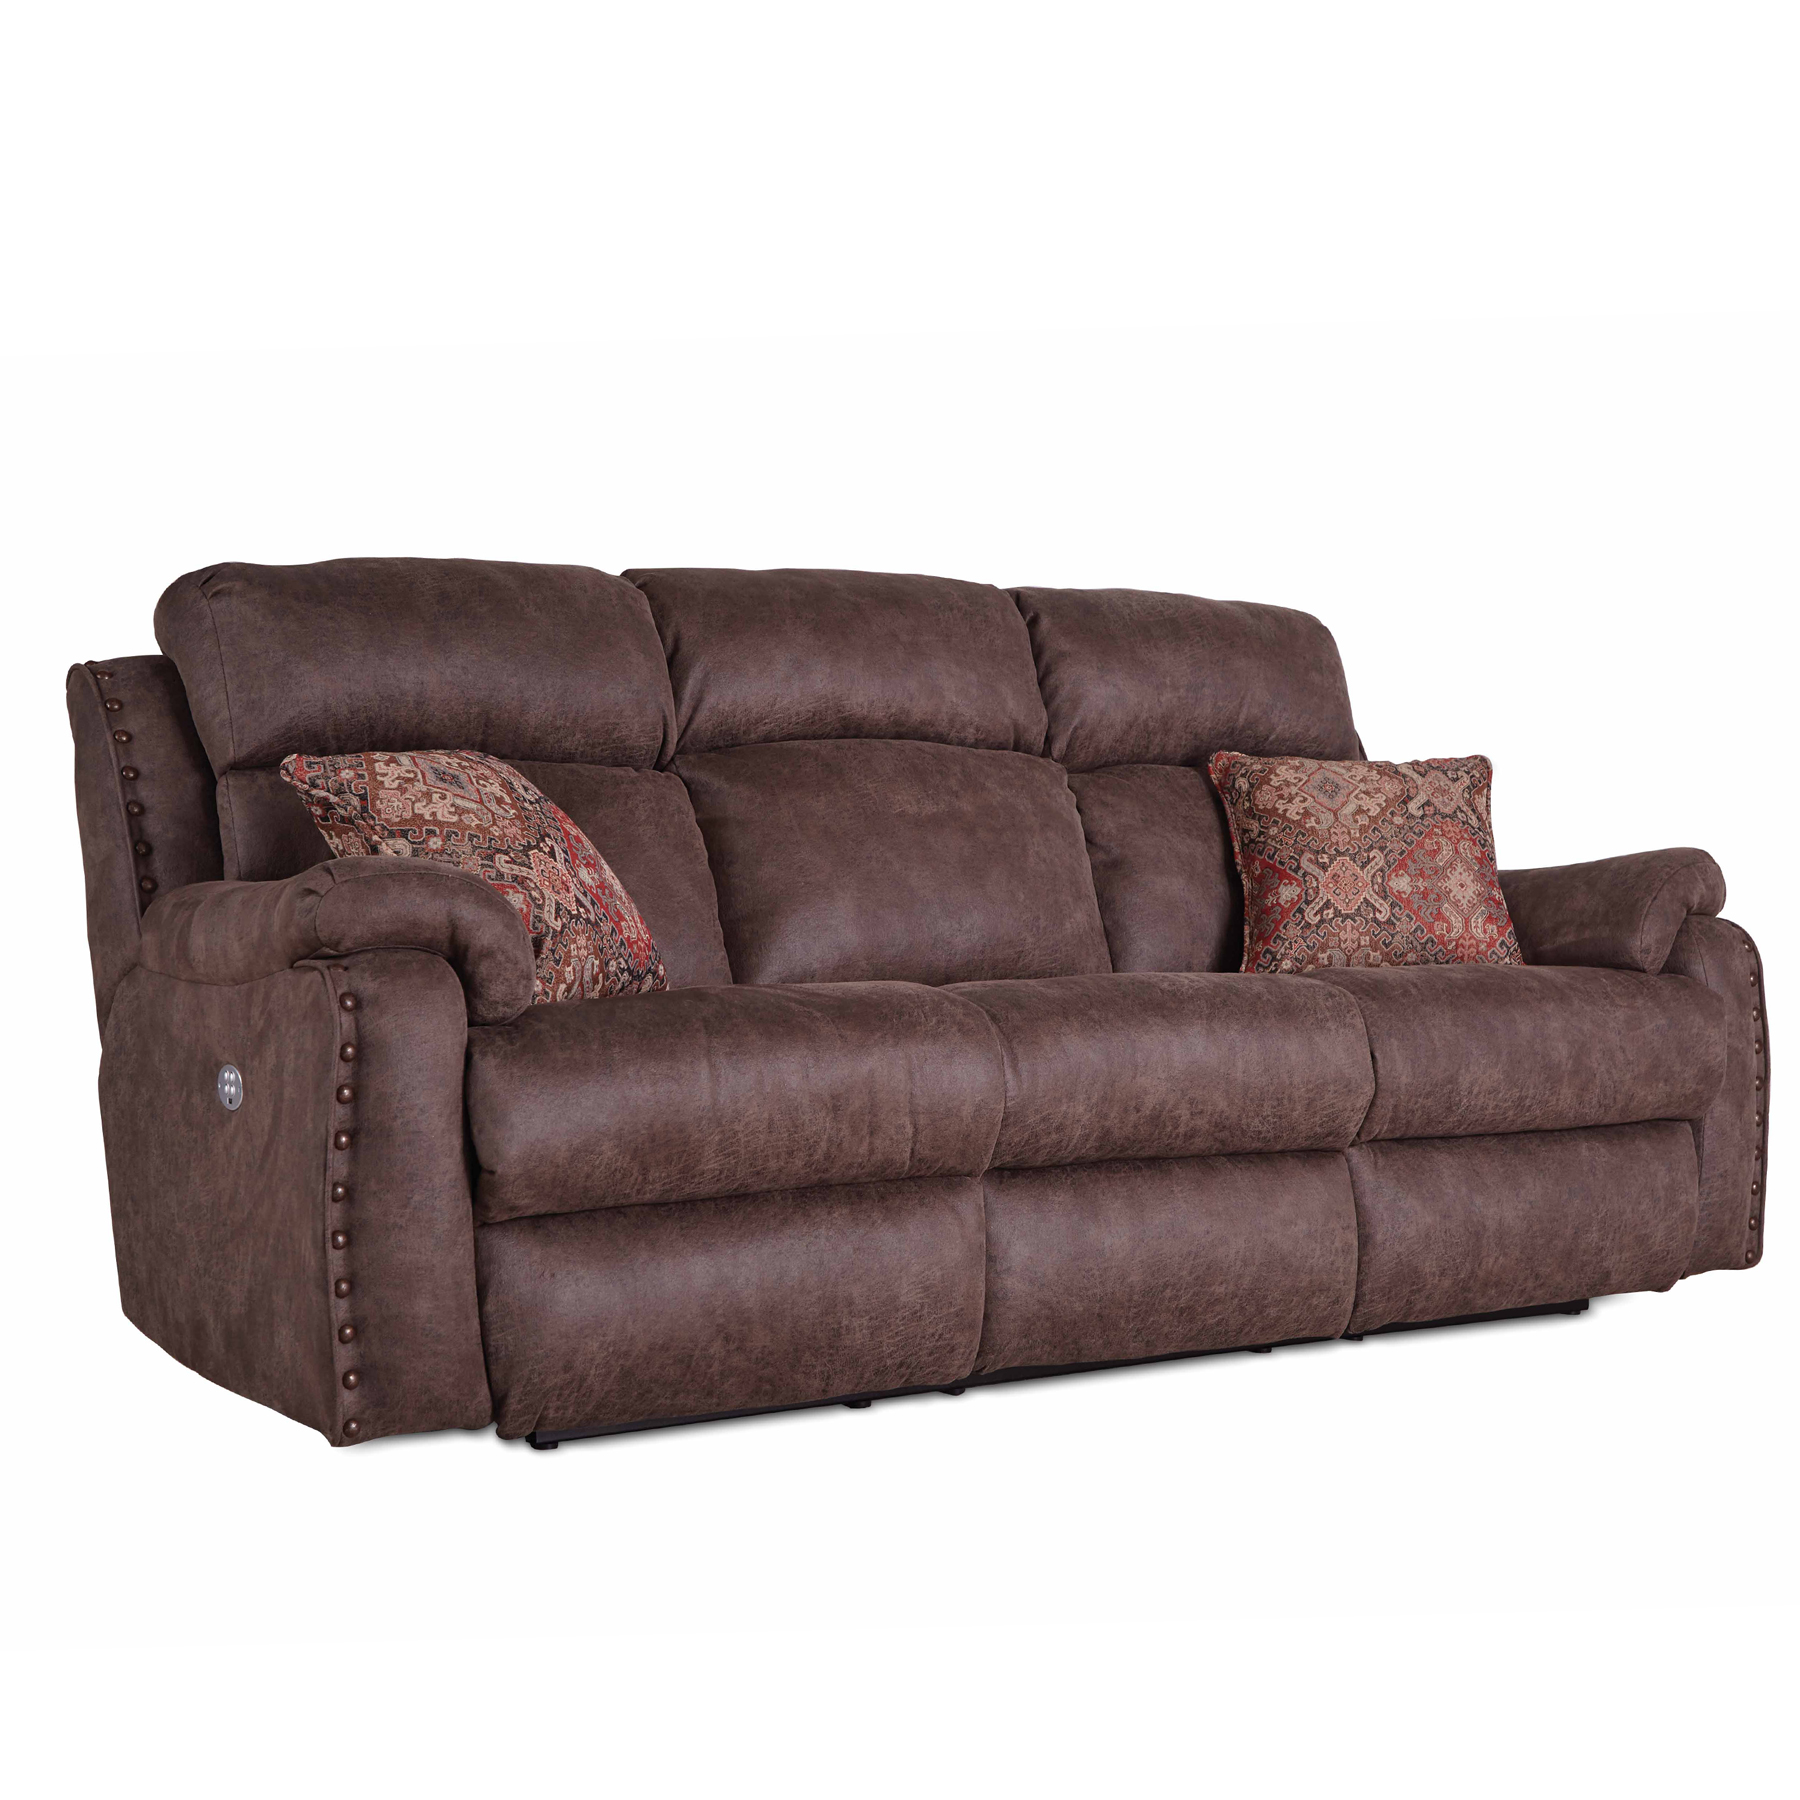 Blue Ribbon Double Reclining Sofa w/ Power | Sofas and Sectionals